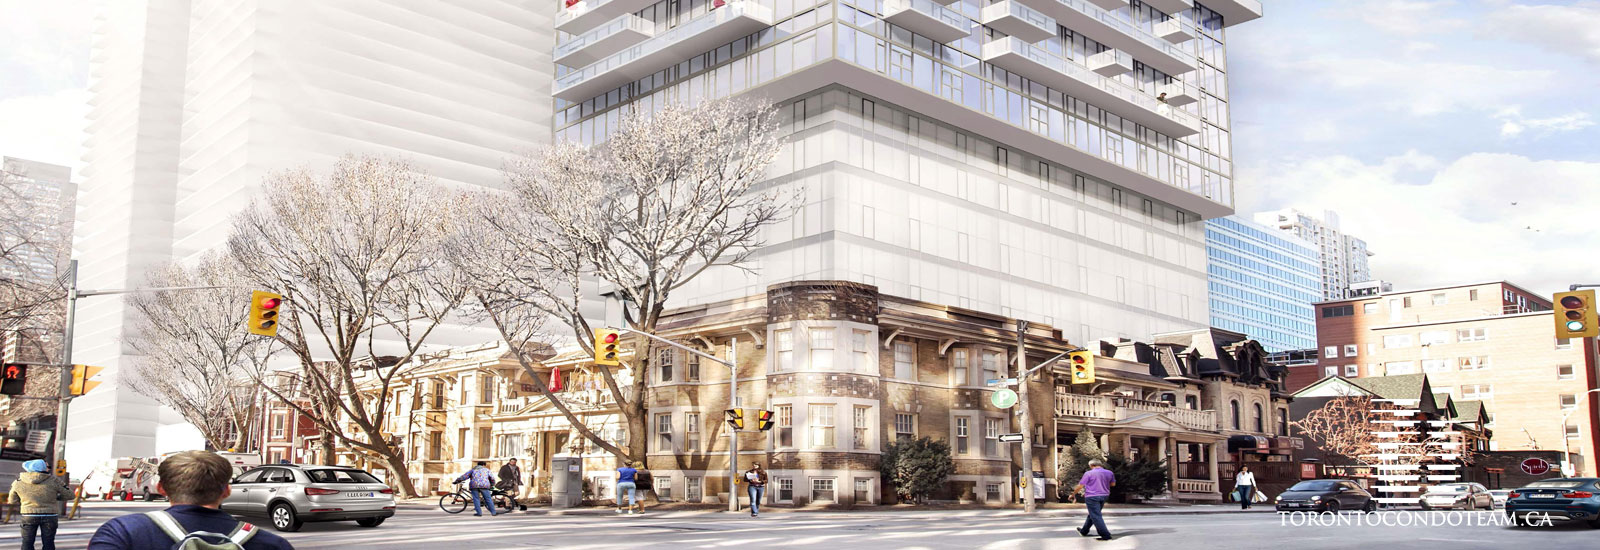 628 Charles Street East Condos For Sale